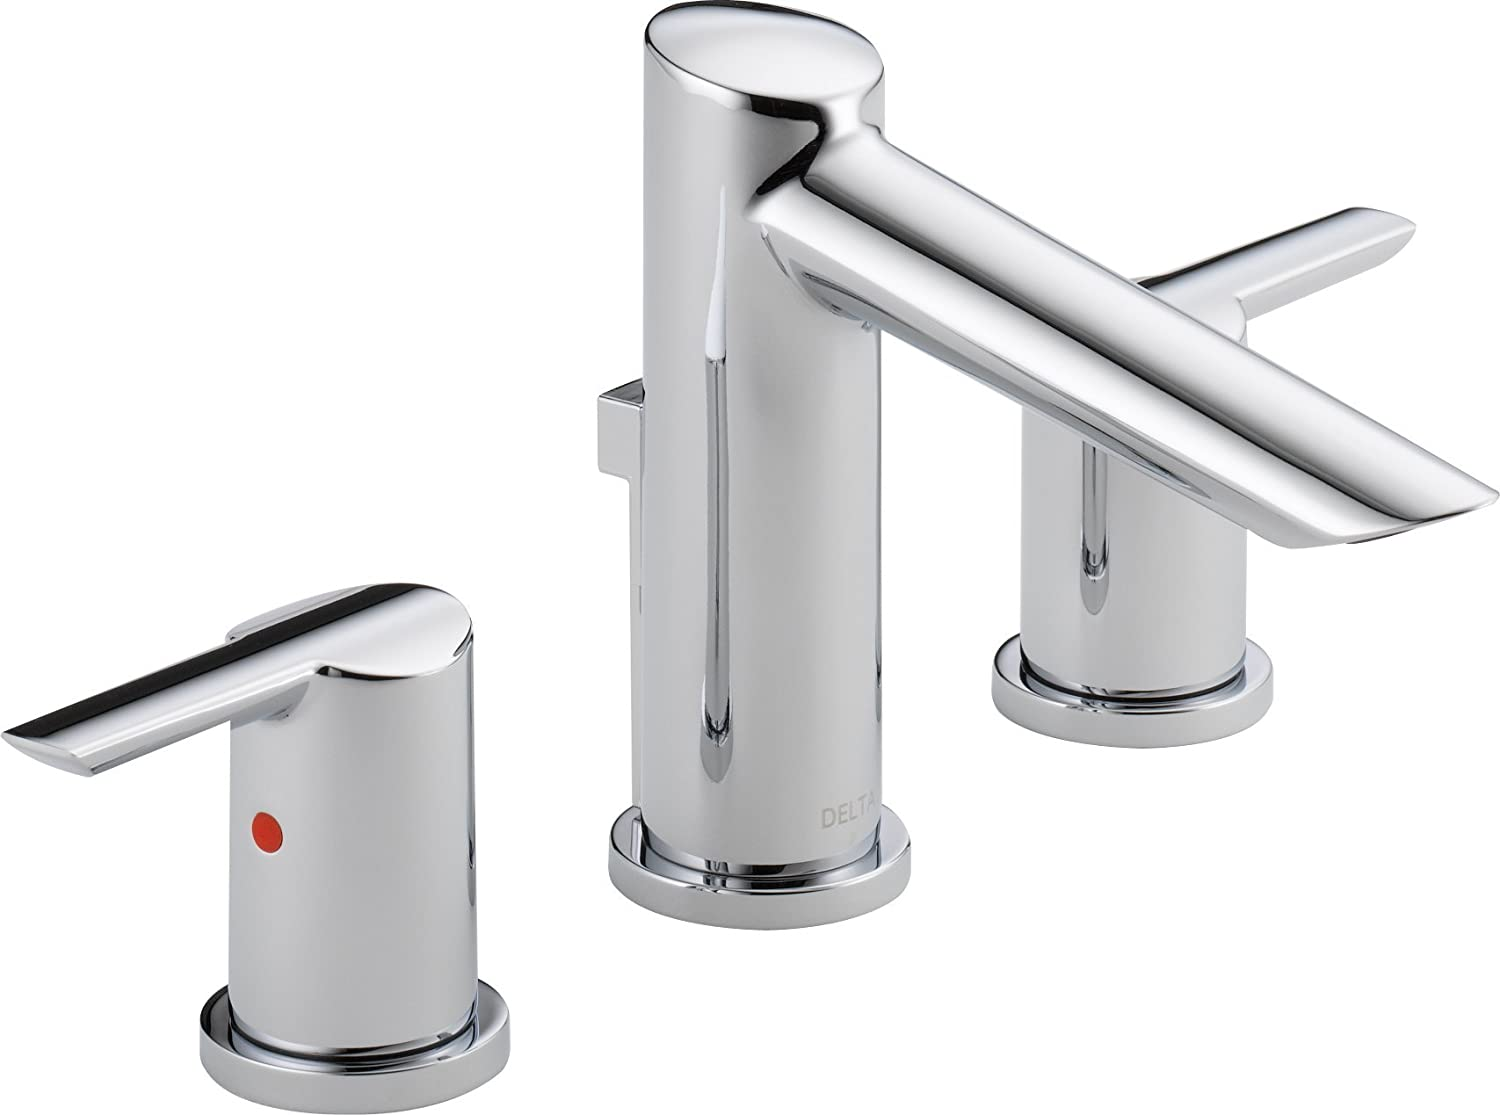 Delta Faucet 3561 MPU DST Compel Widespread Bath Faucet With Metal Pop Up,  Chrome   Bathtub Faucets   Amazon.com